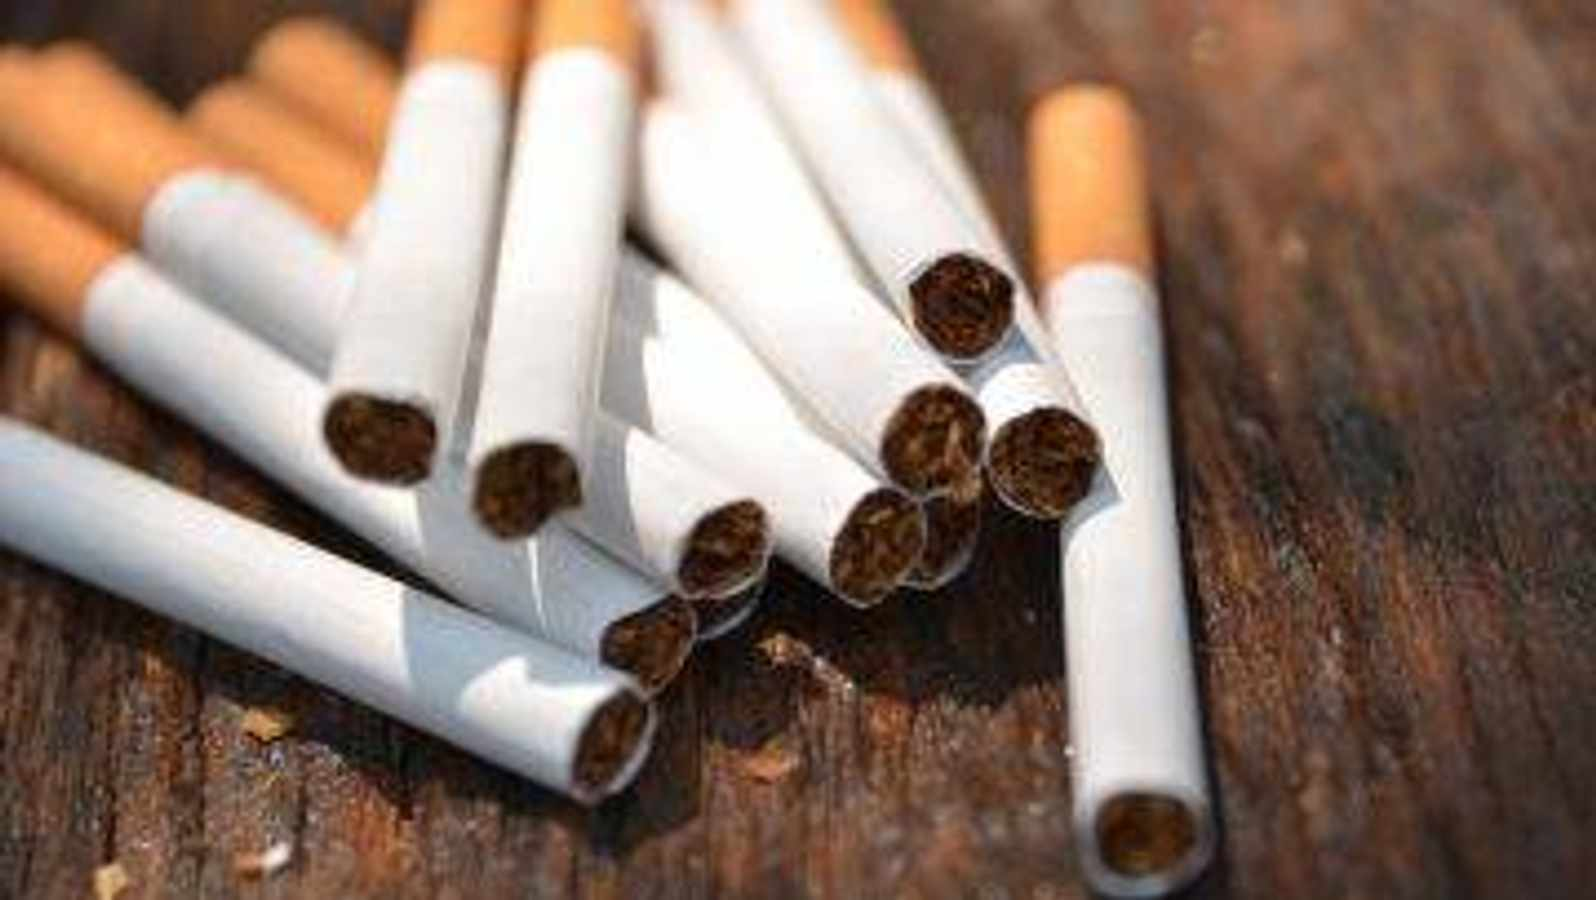 OPINION: Just deal with the cigarette ban